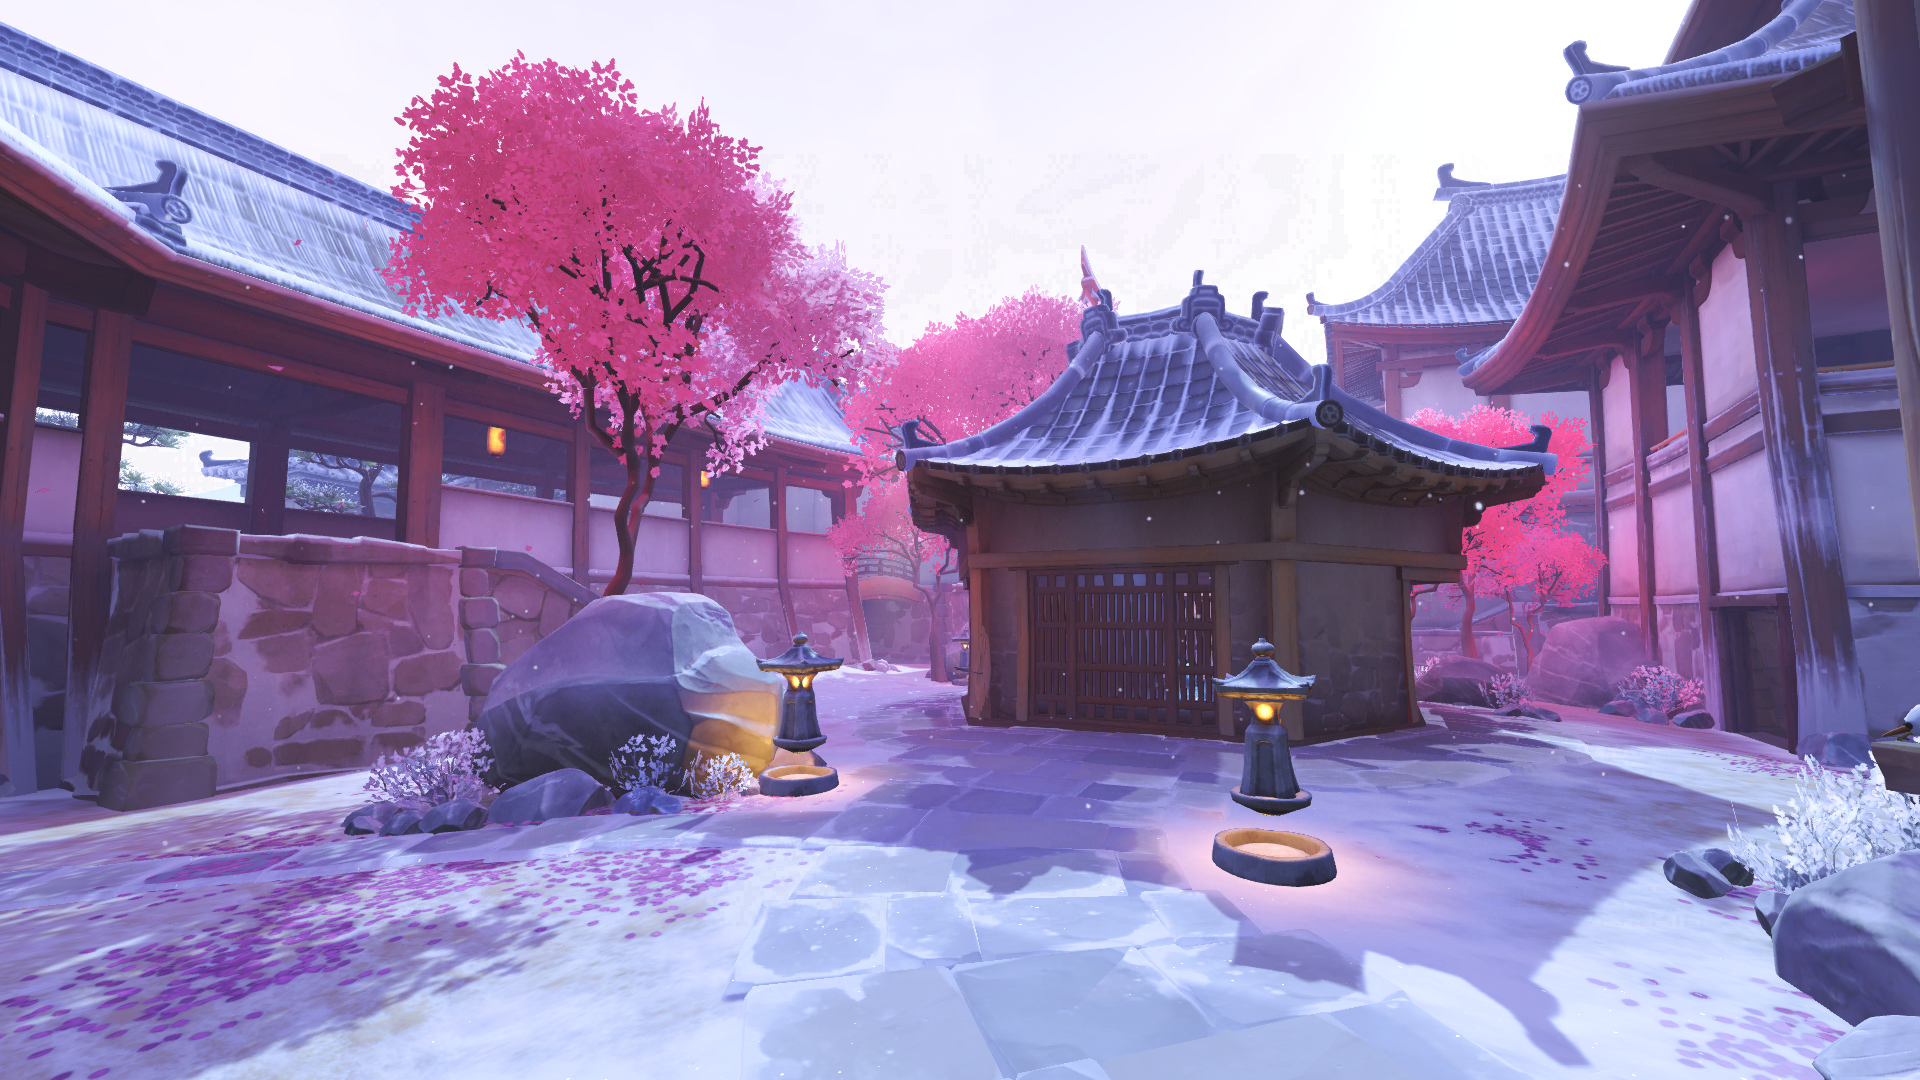 Holiday Hanamura Overwatch Fantasy Places Overwatch Game Environment